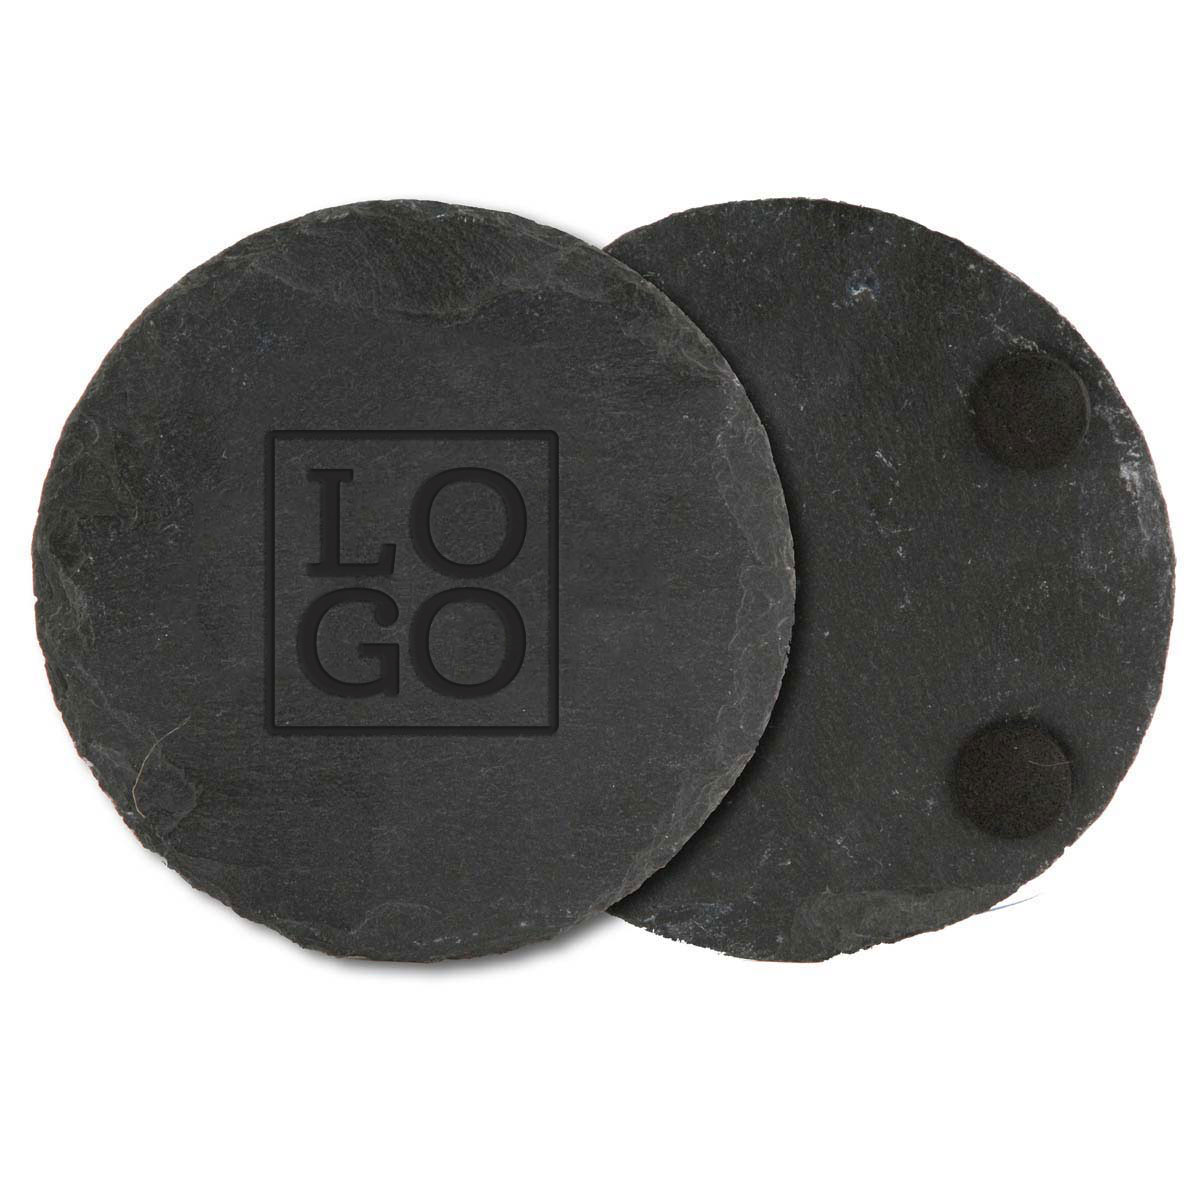 250793 round slate coaster one location laser engraved